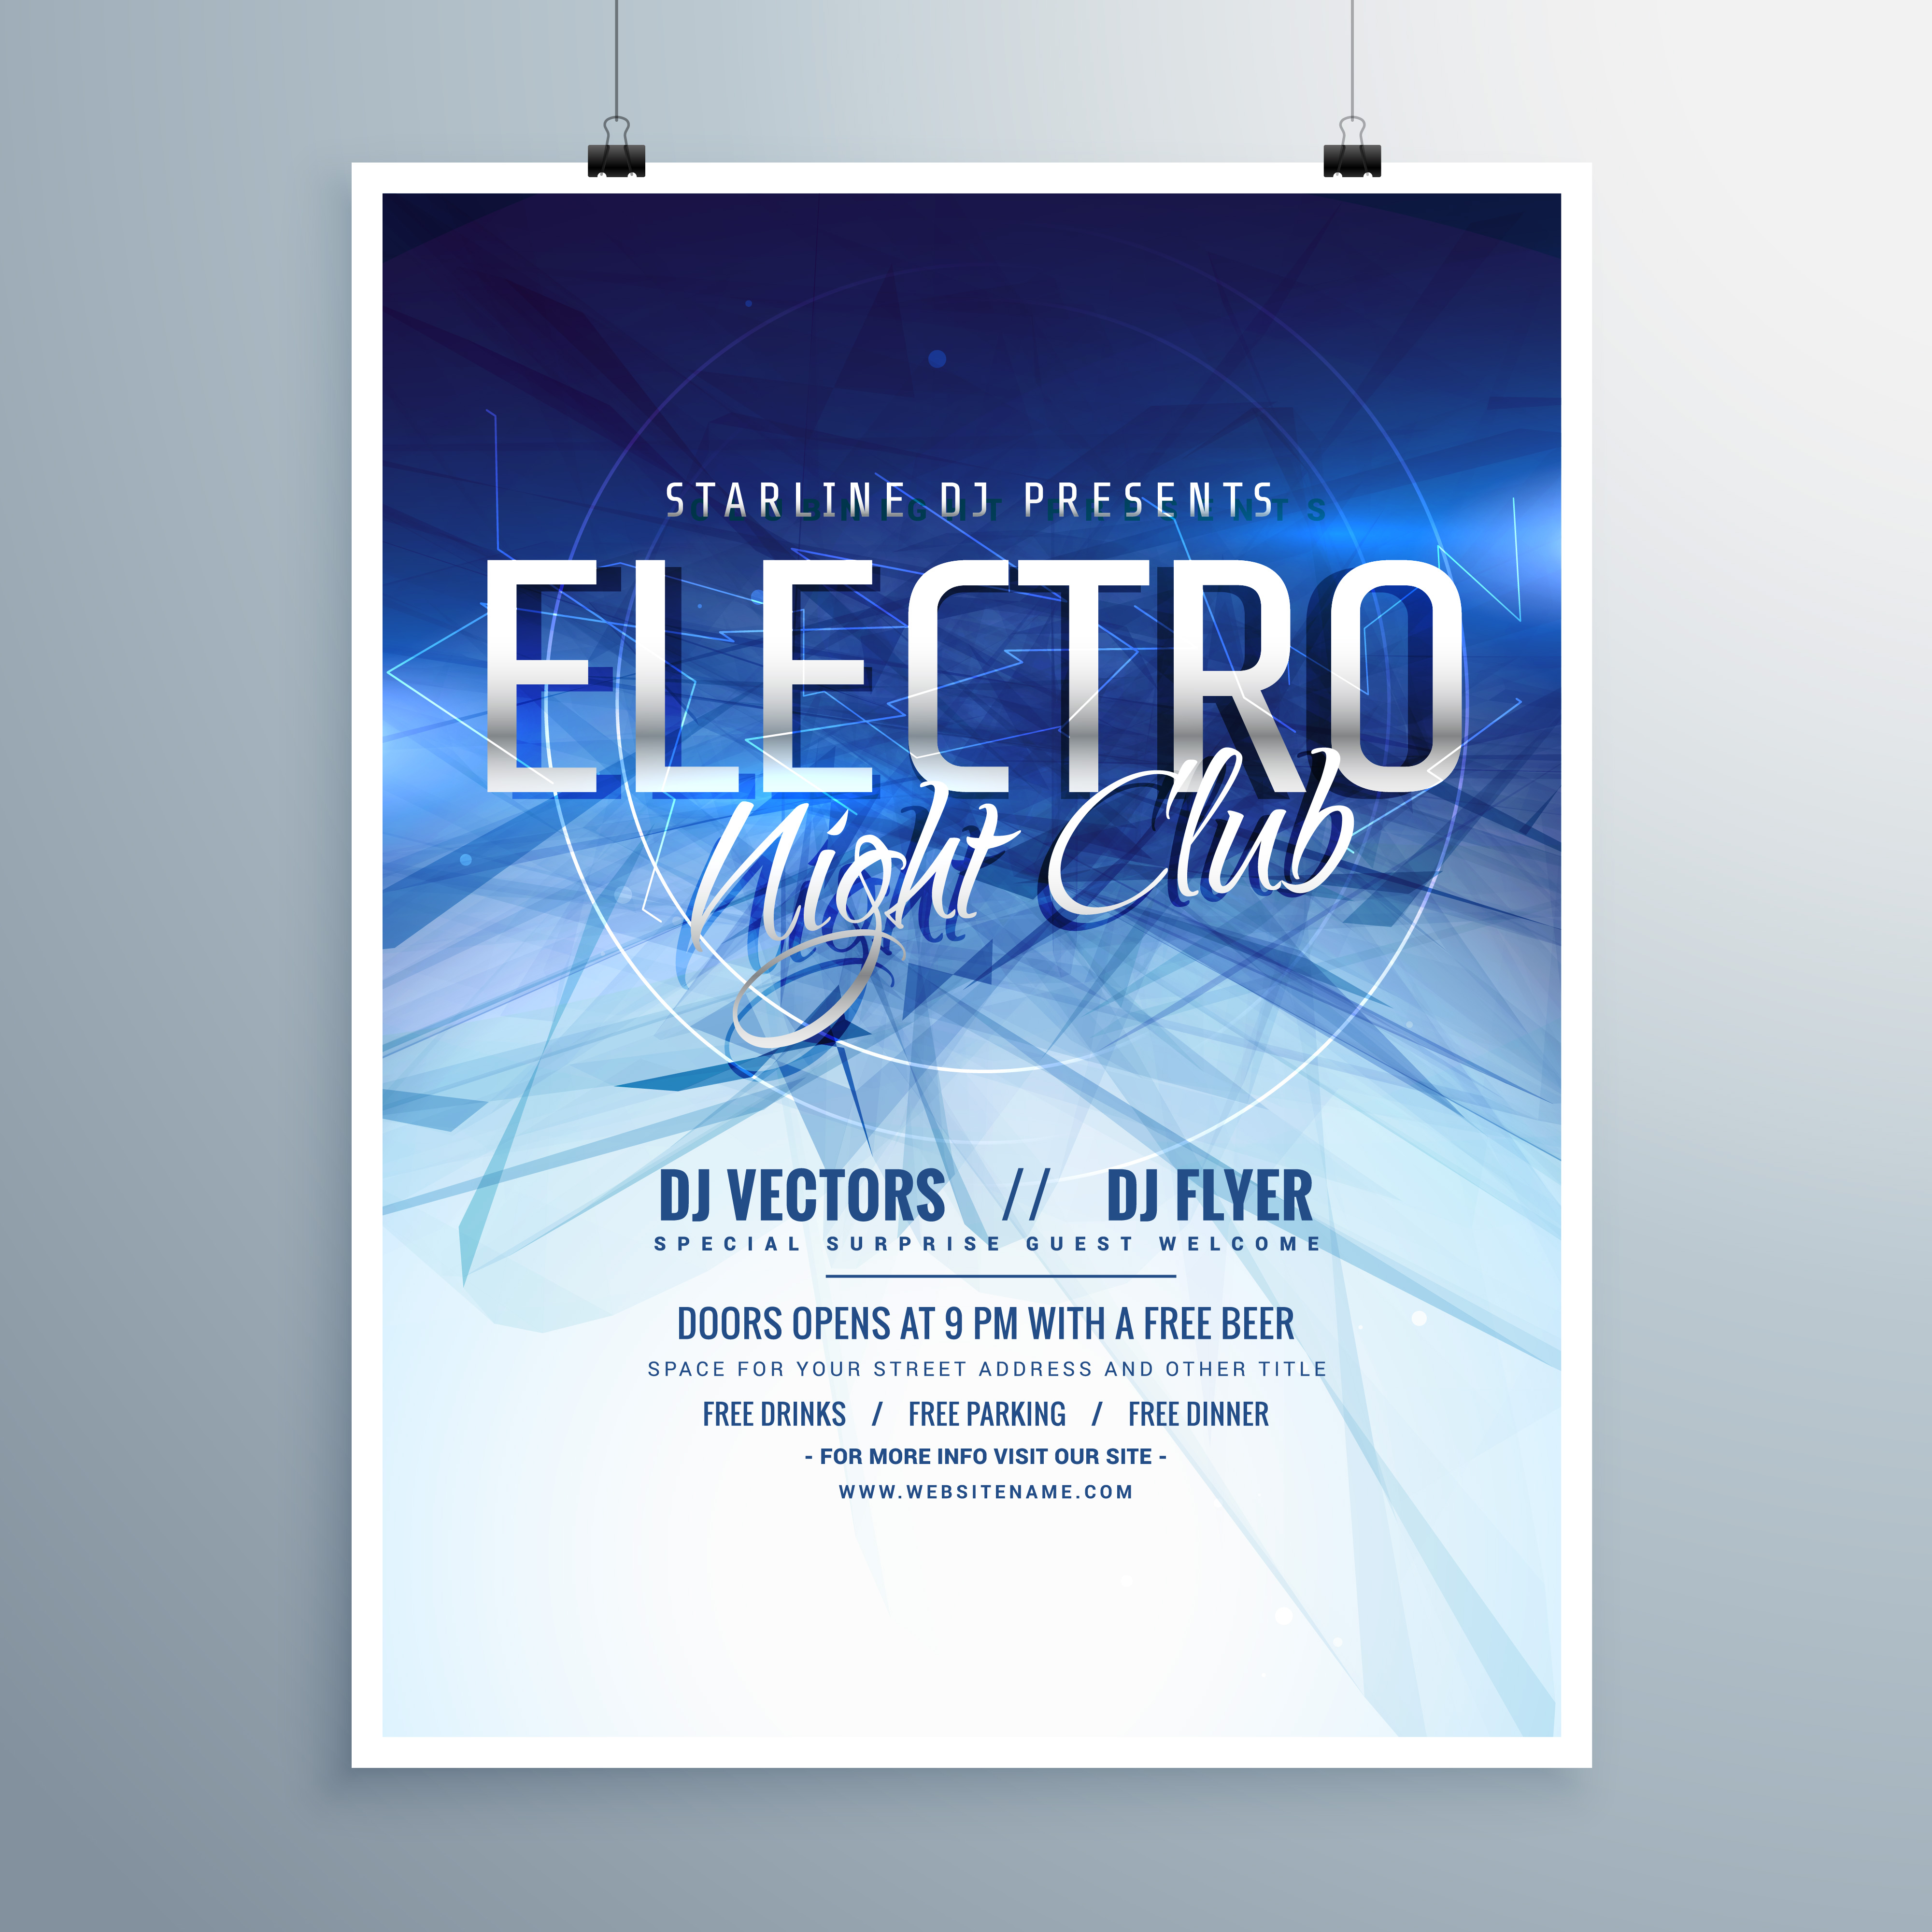 Electro Night Club Party Flyer Poster Template   Download Free Vector Art,  Stock Graphics U0026 Images